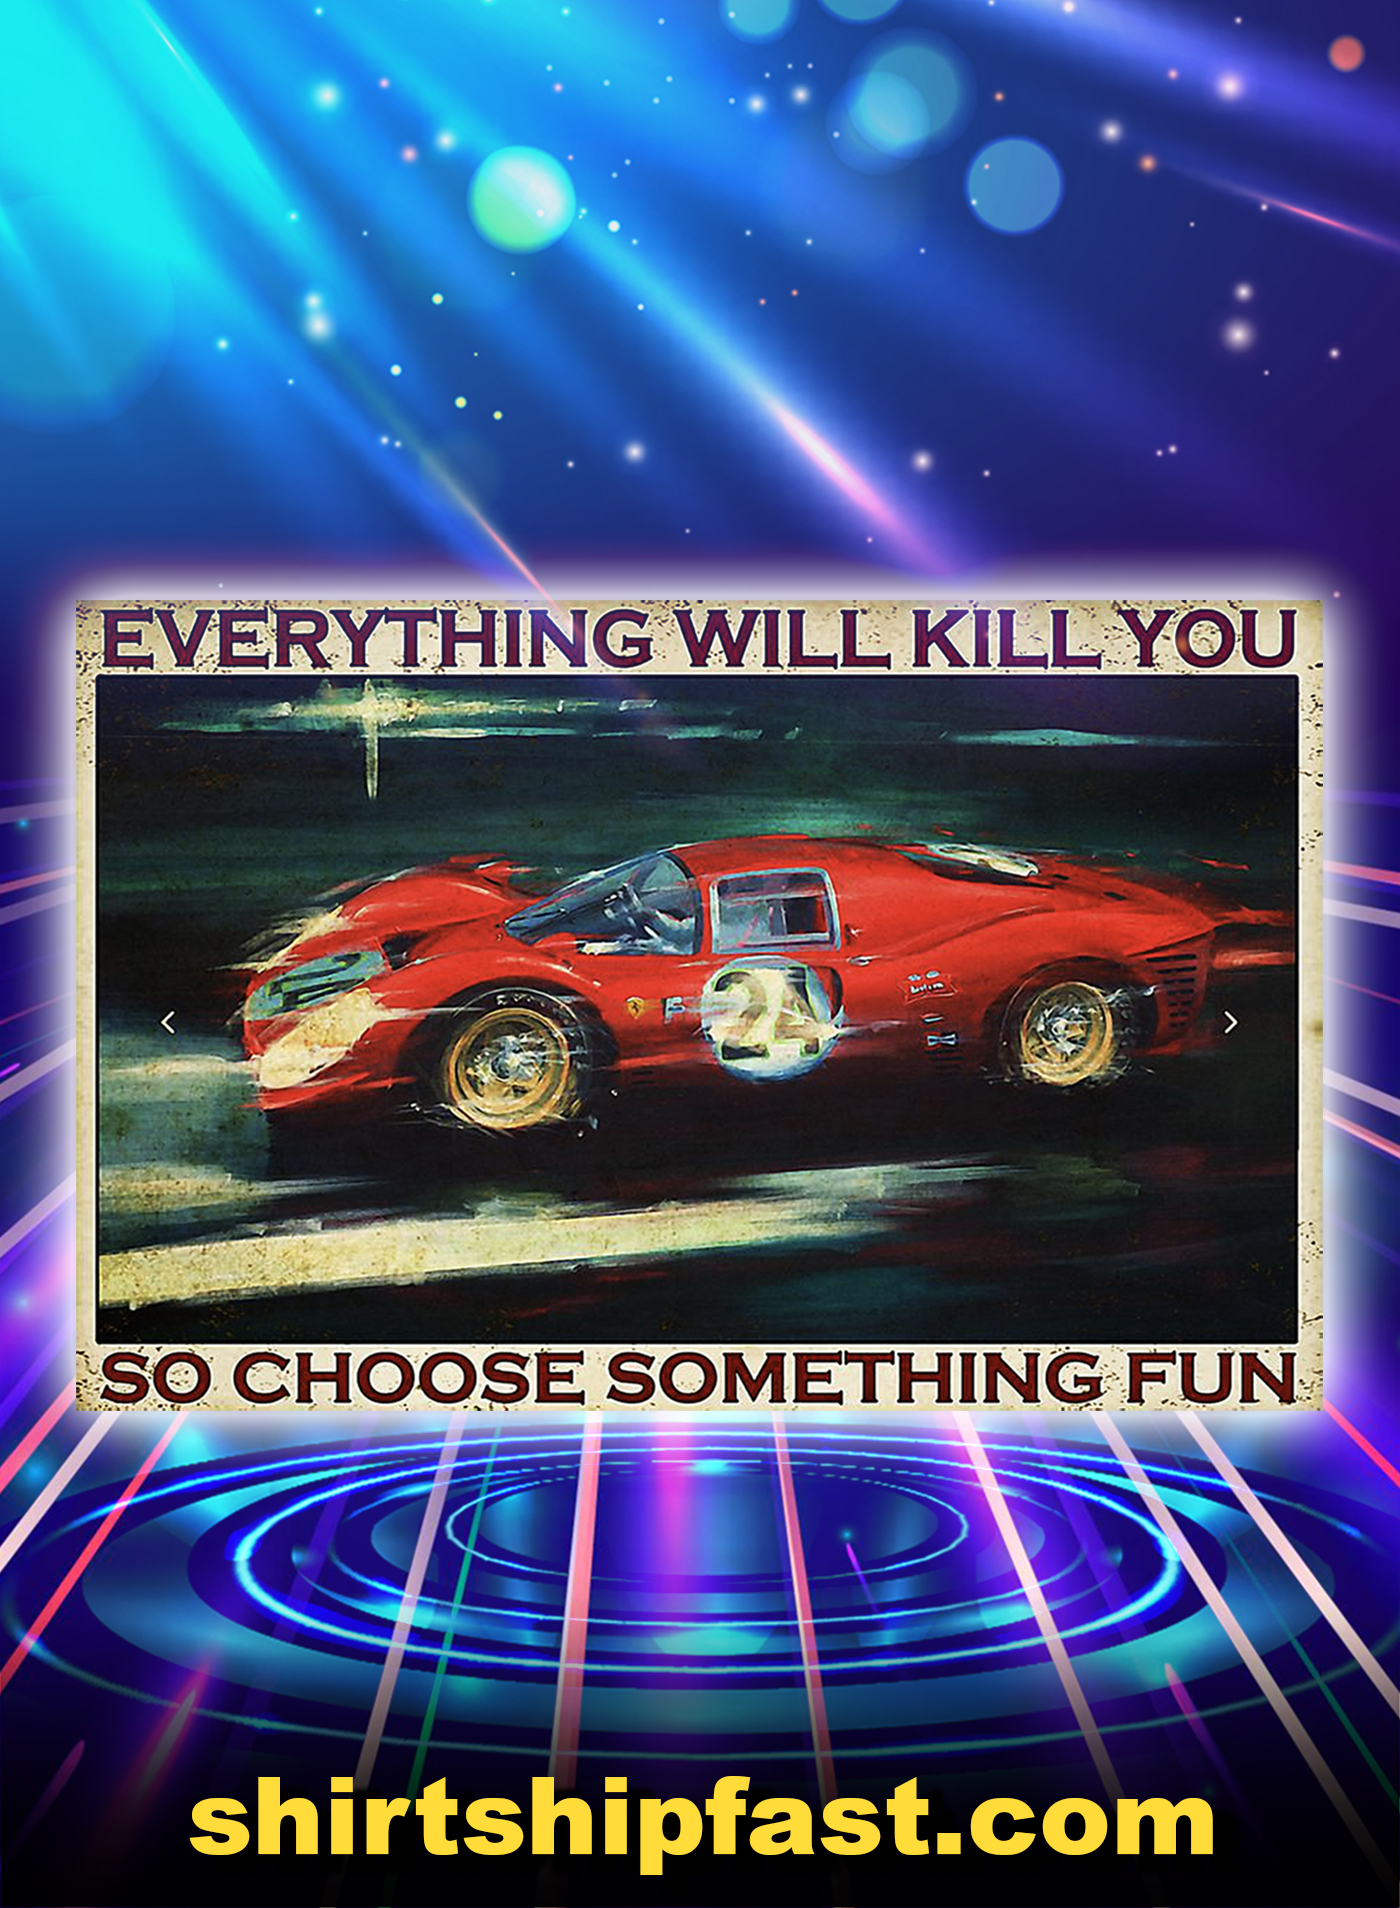 Sport car racing everything will kill you so choose something fun poster - A1